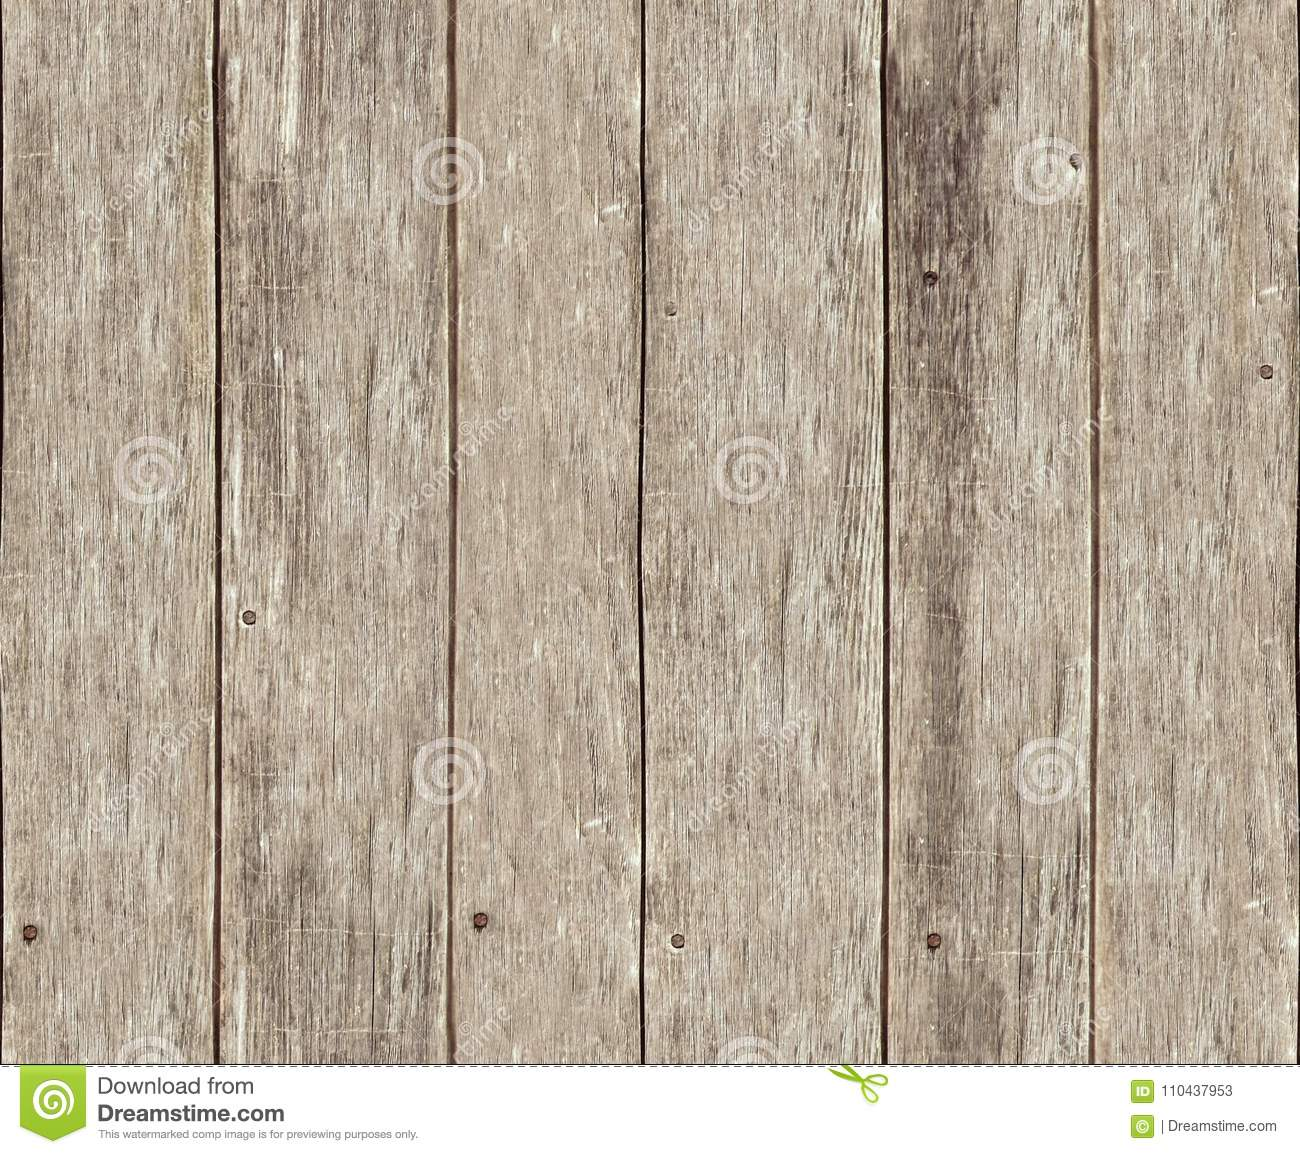 wood tileable seamless textures wallpaper stock image image of